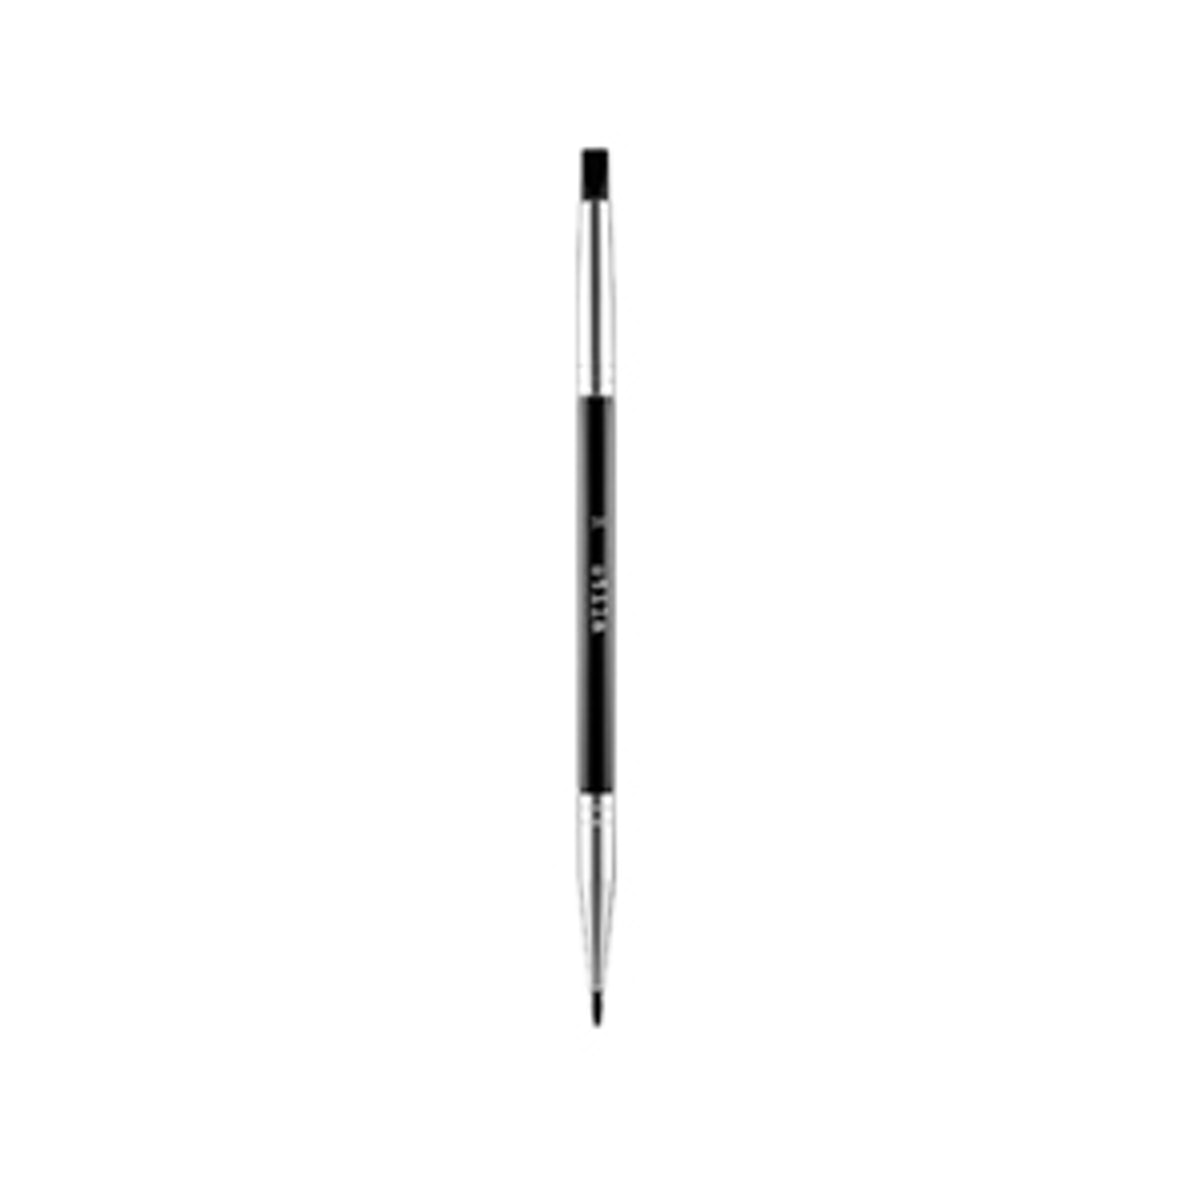 Magnificent Metals Double-Ended Eye Liner Applicator